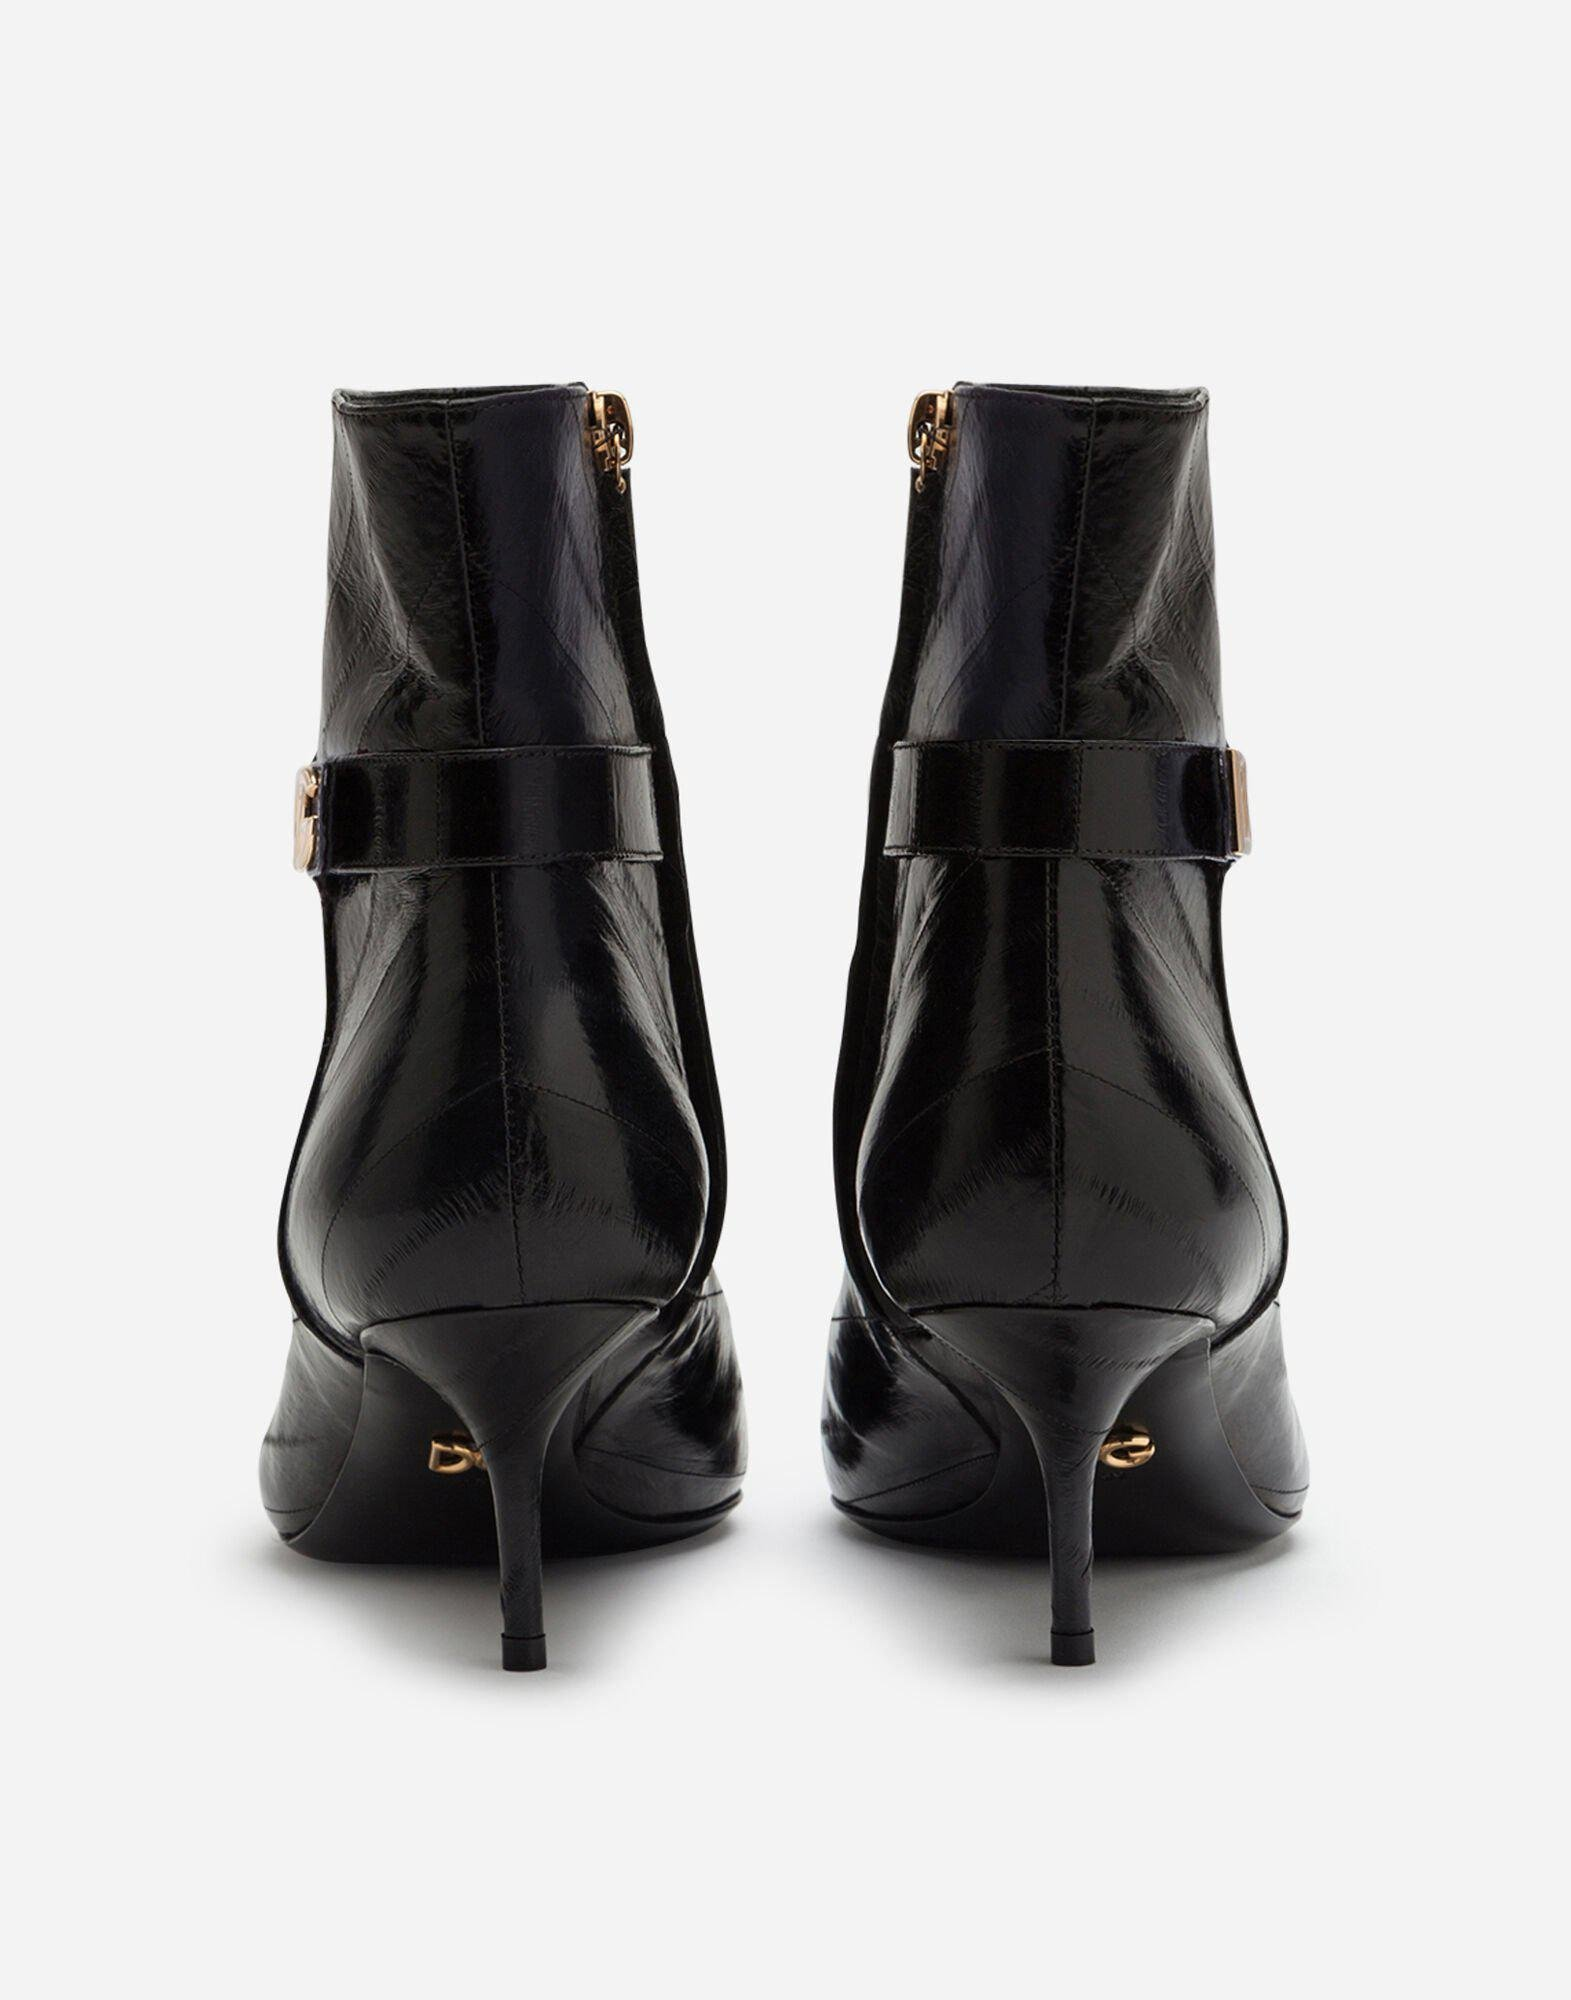 Ankle boots in eel with DG logo 2